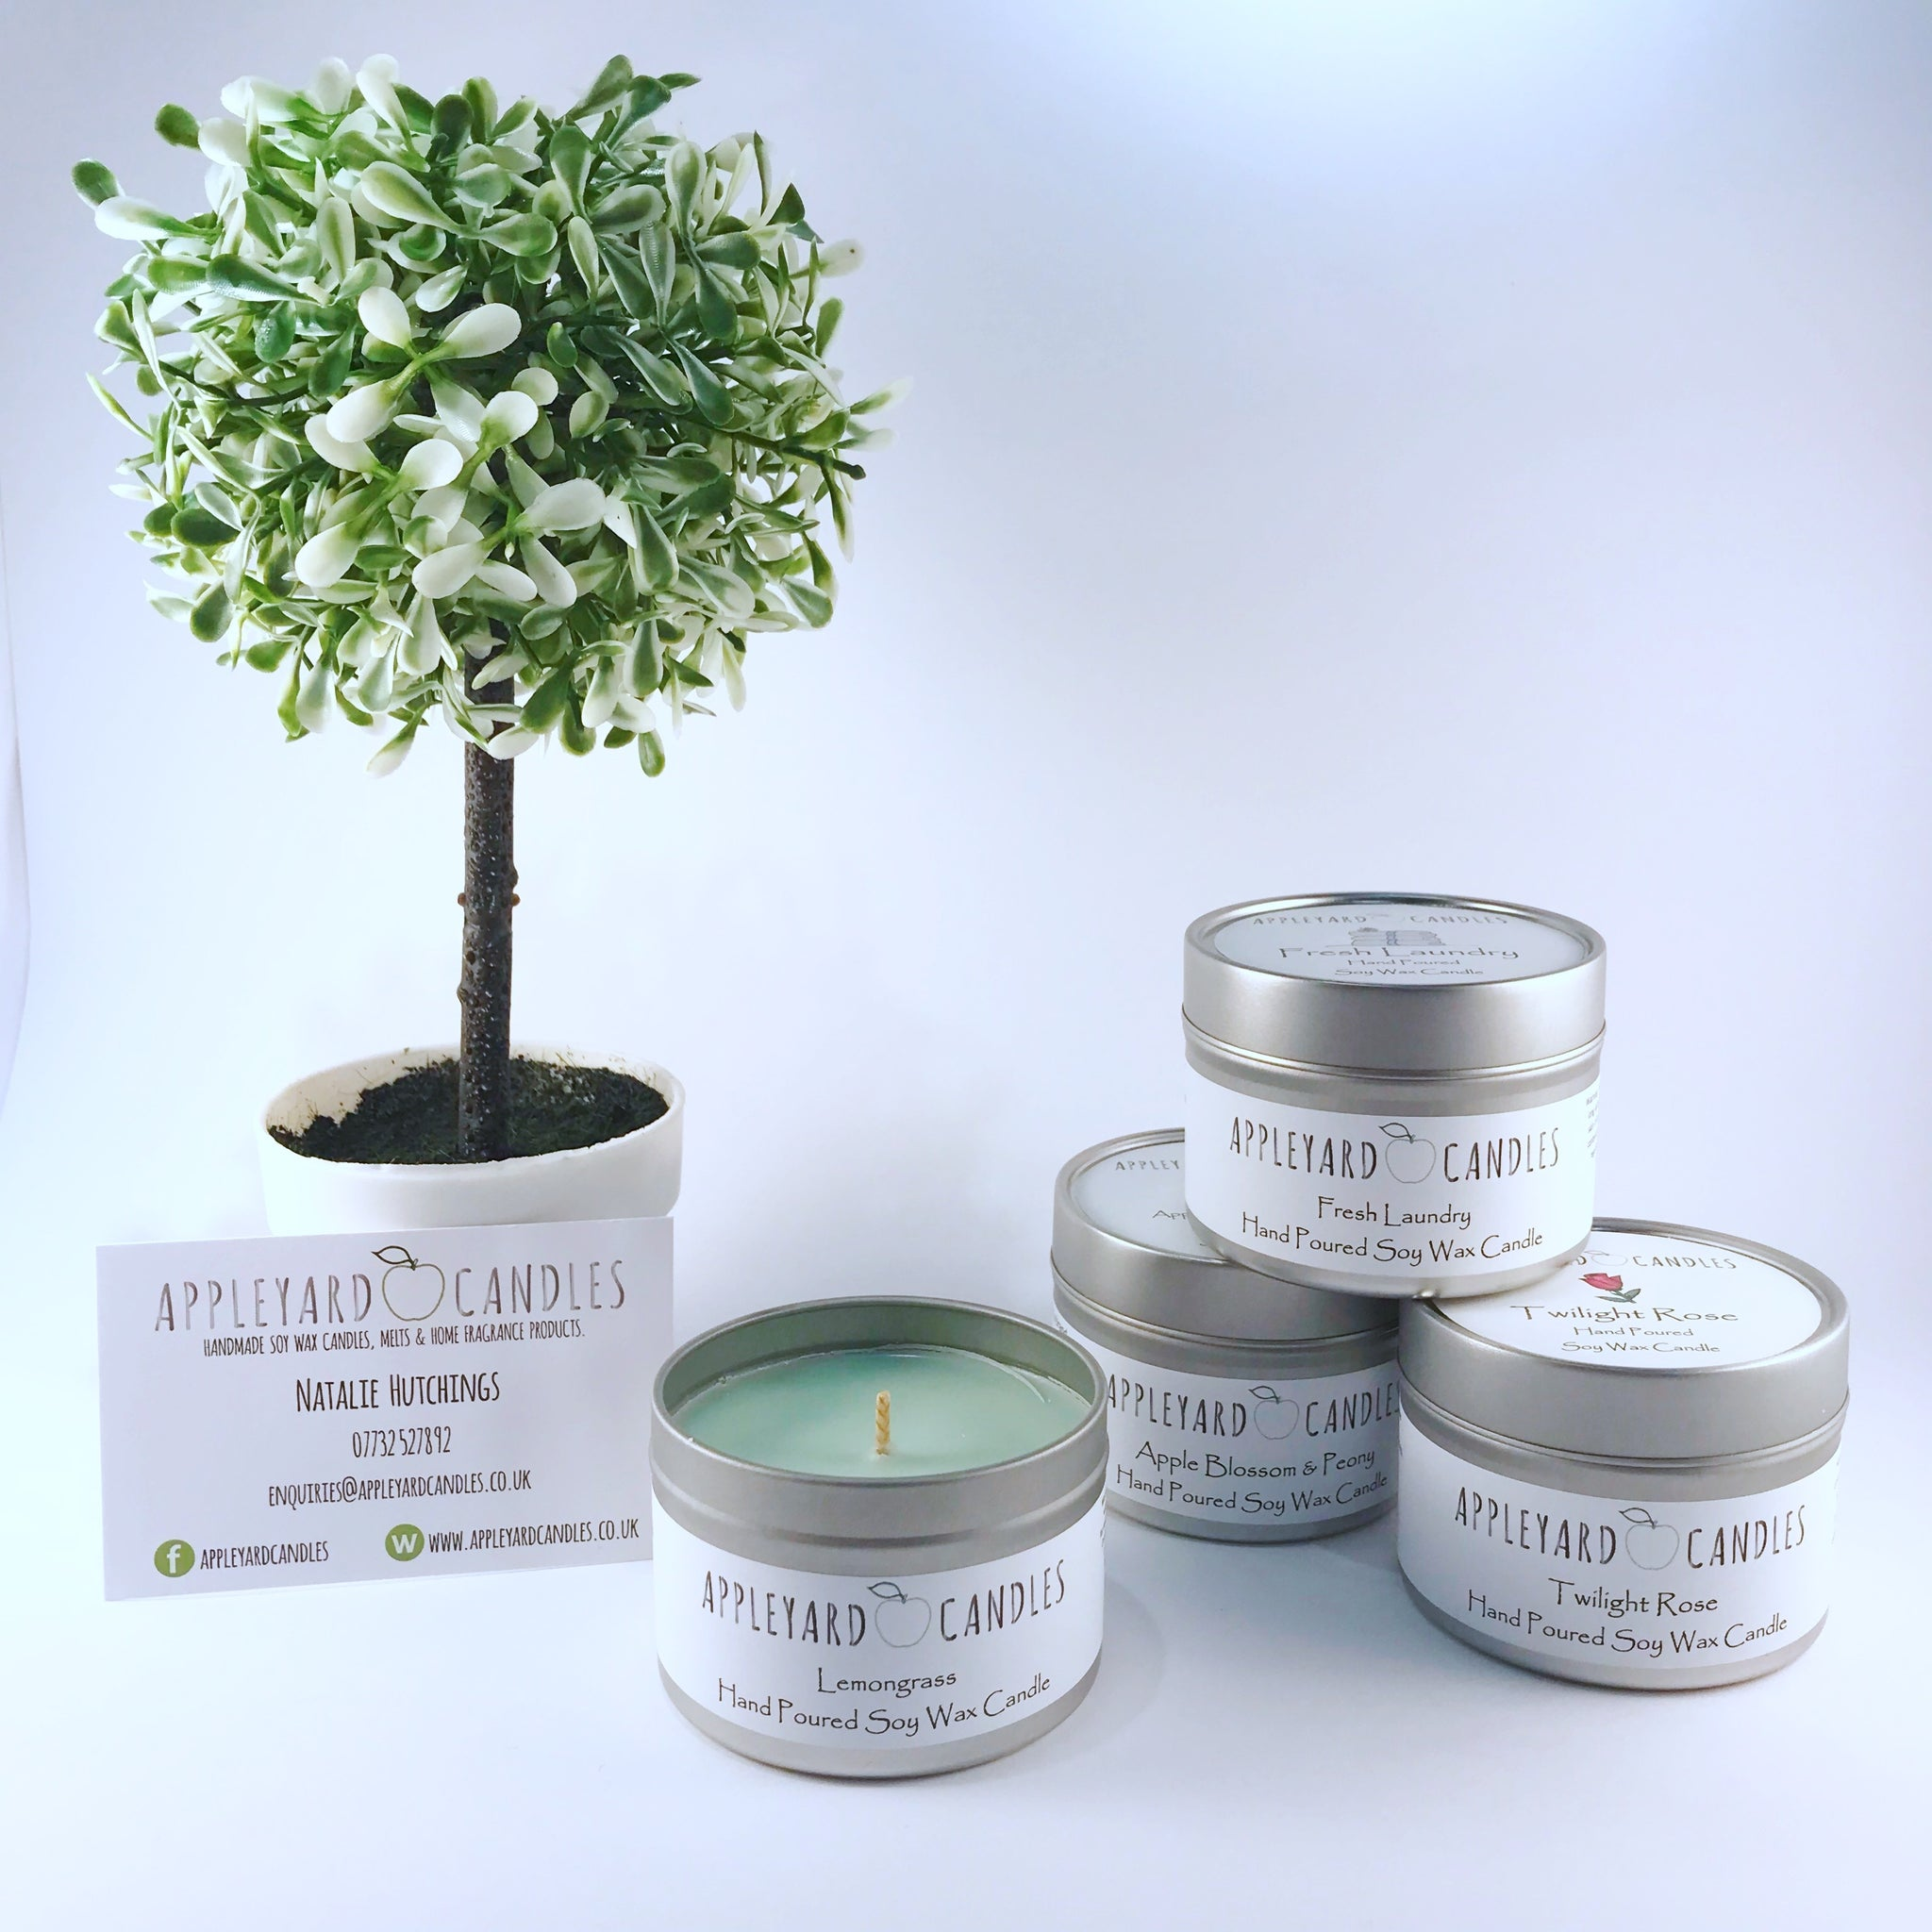 Tin Candle - Apple Blossom & Peony